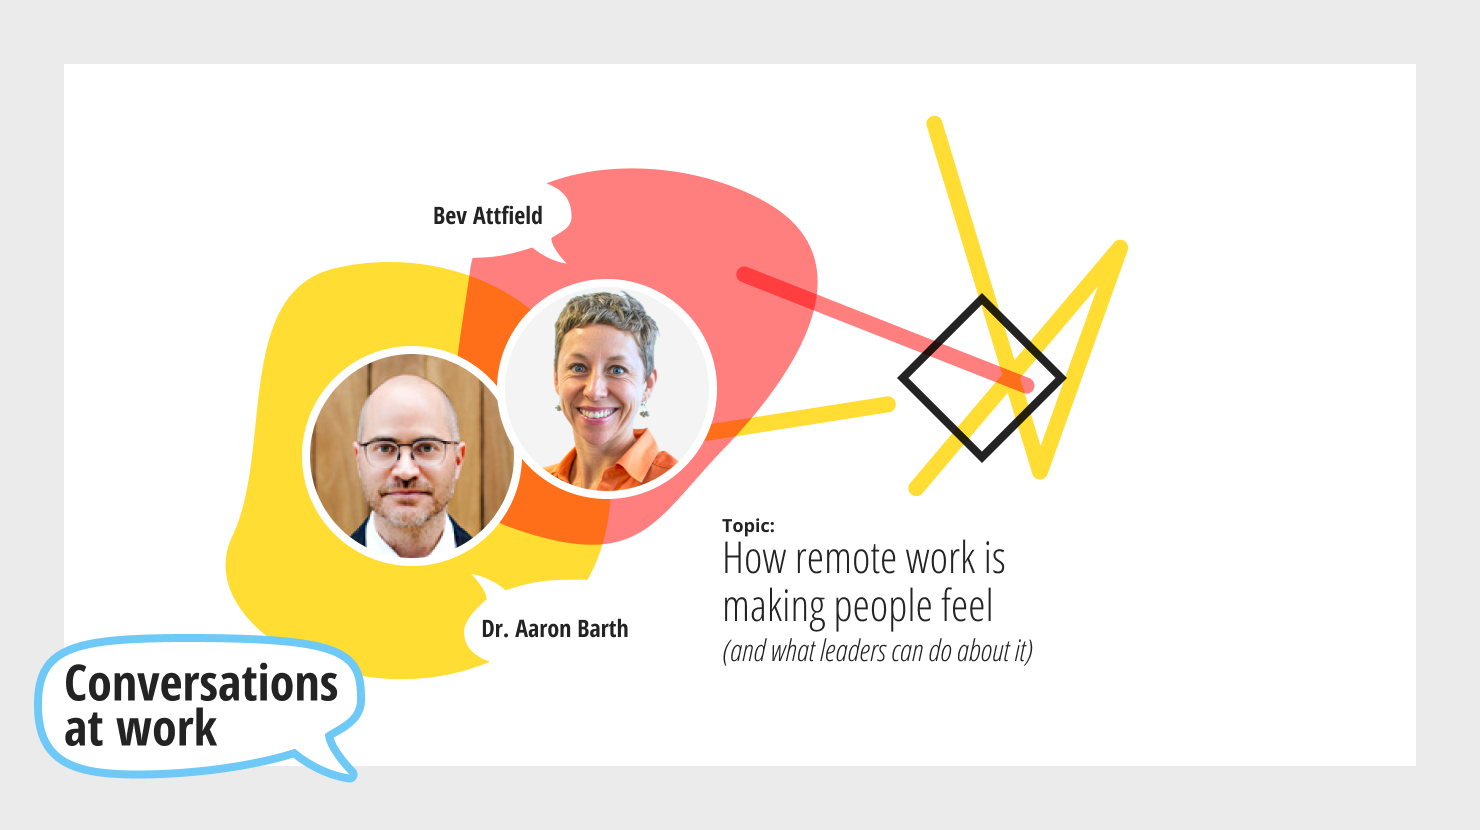 How remote work is making people feel (and what leaders can do about it)